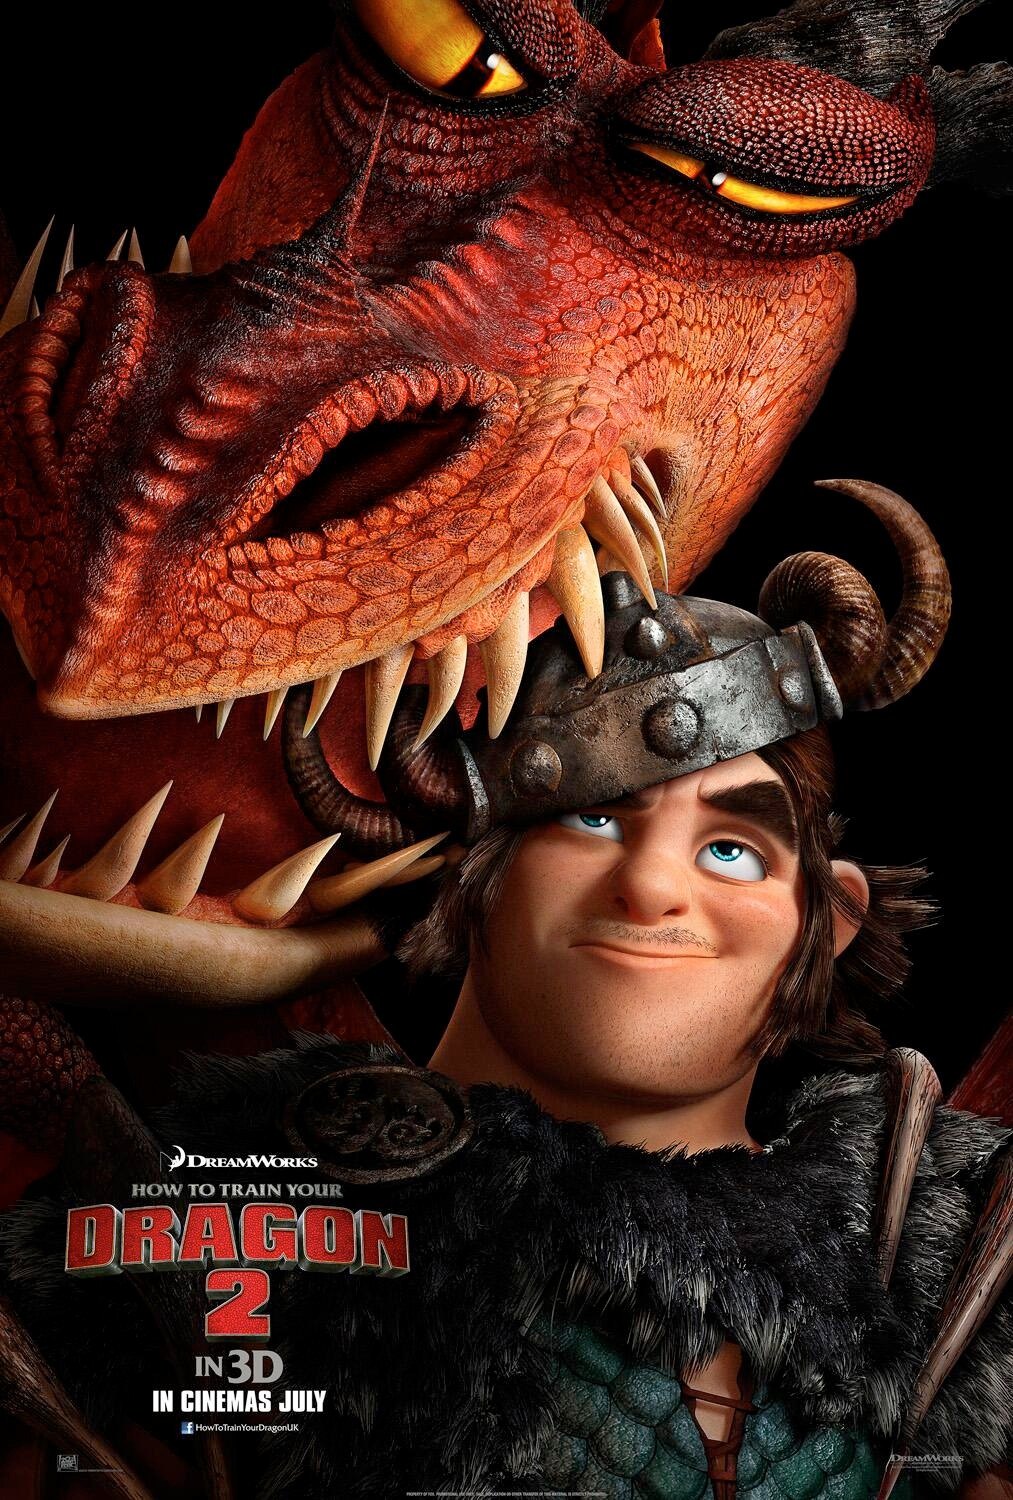 Character Design How To Train Your Dragon 2 : Check out snotlout s stache in new how to train your